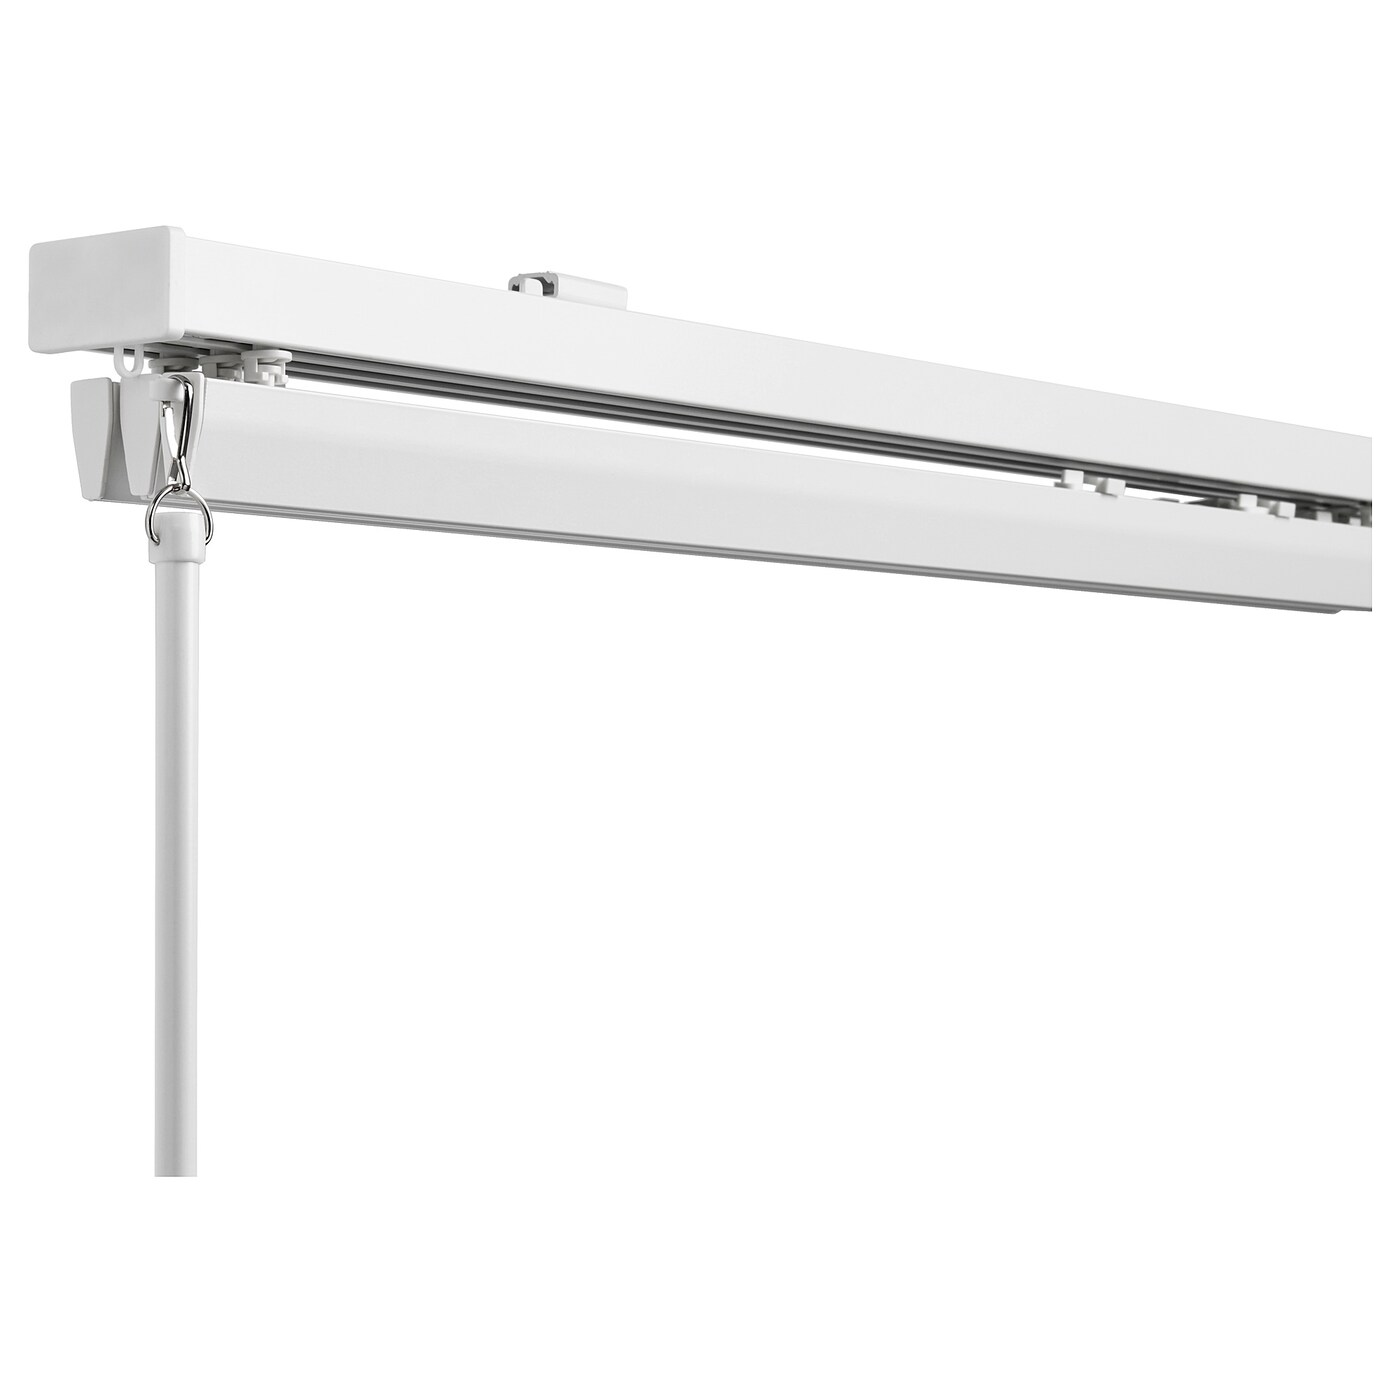 Vidga Set Per Tende A Pannello Da Soffitto Ikea - Ikea Gardinenstange Vidga Video